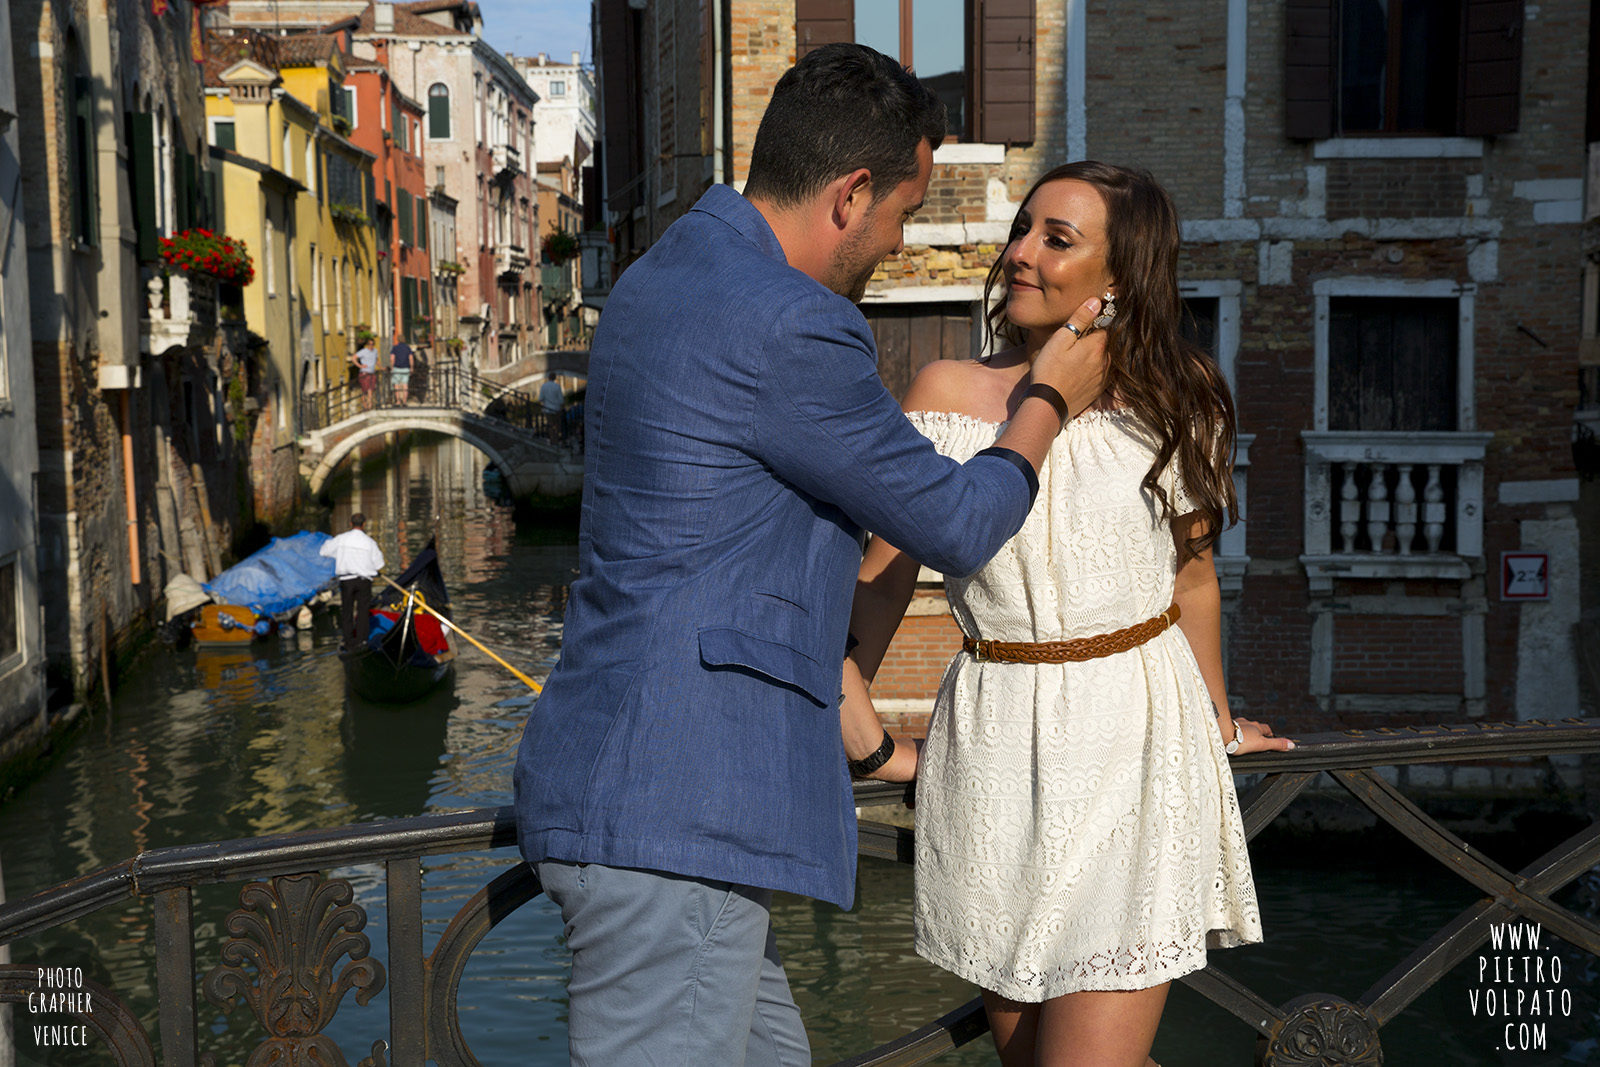 photographer-in-venice-for-couple-pre-wedding-photoshoot-romantic-vacation-tour-pictures-20160524_09